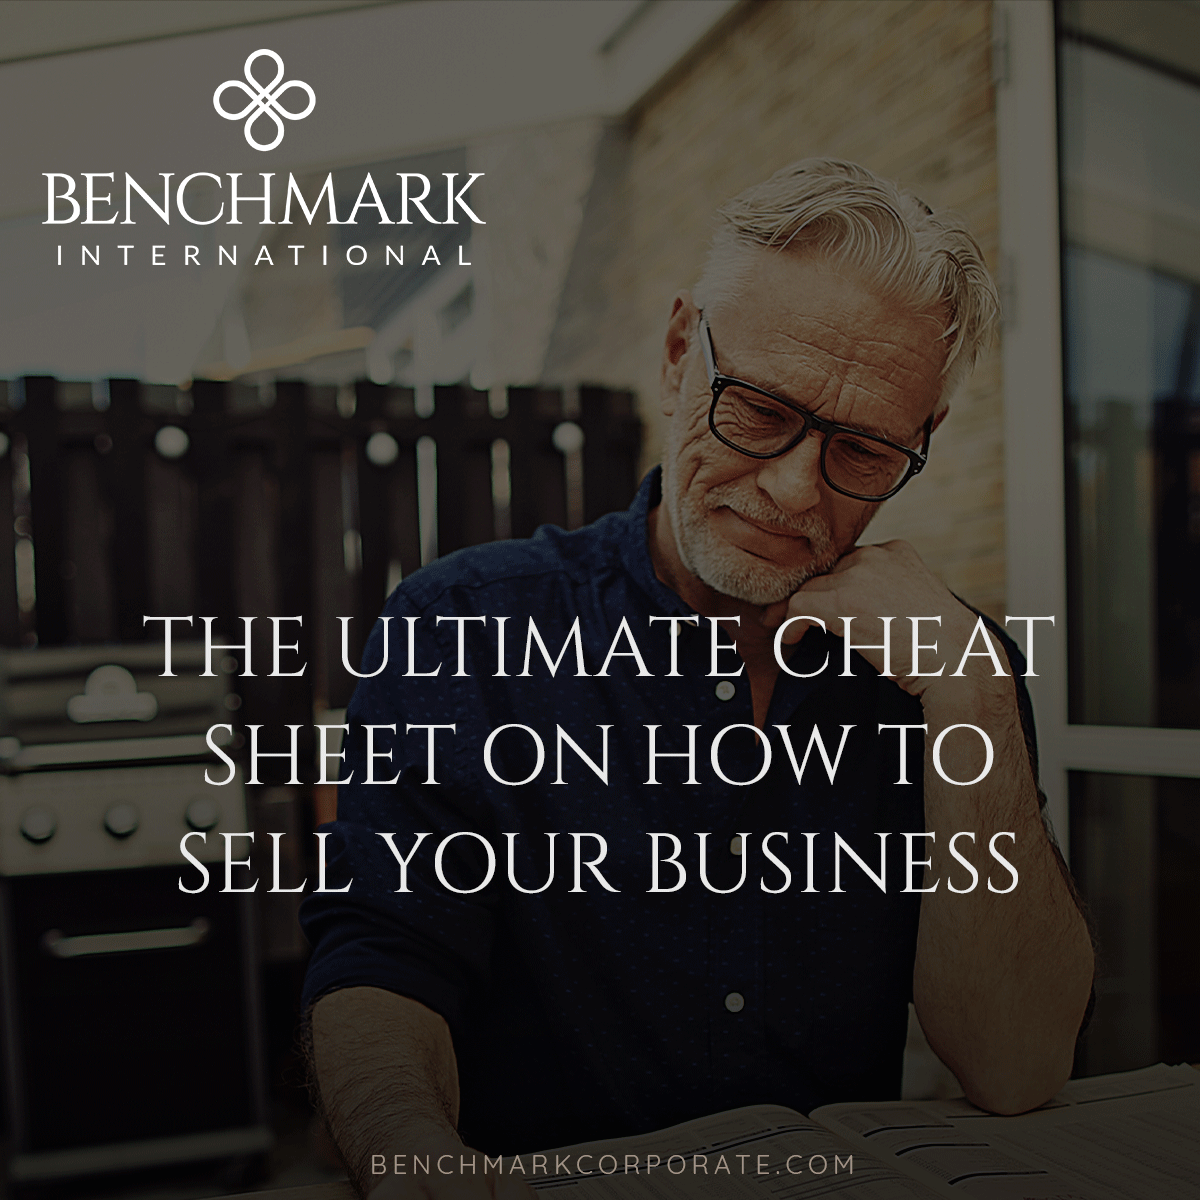 Cheat_Sheet_to_sell_Business_social